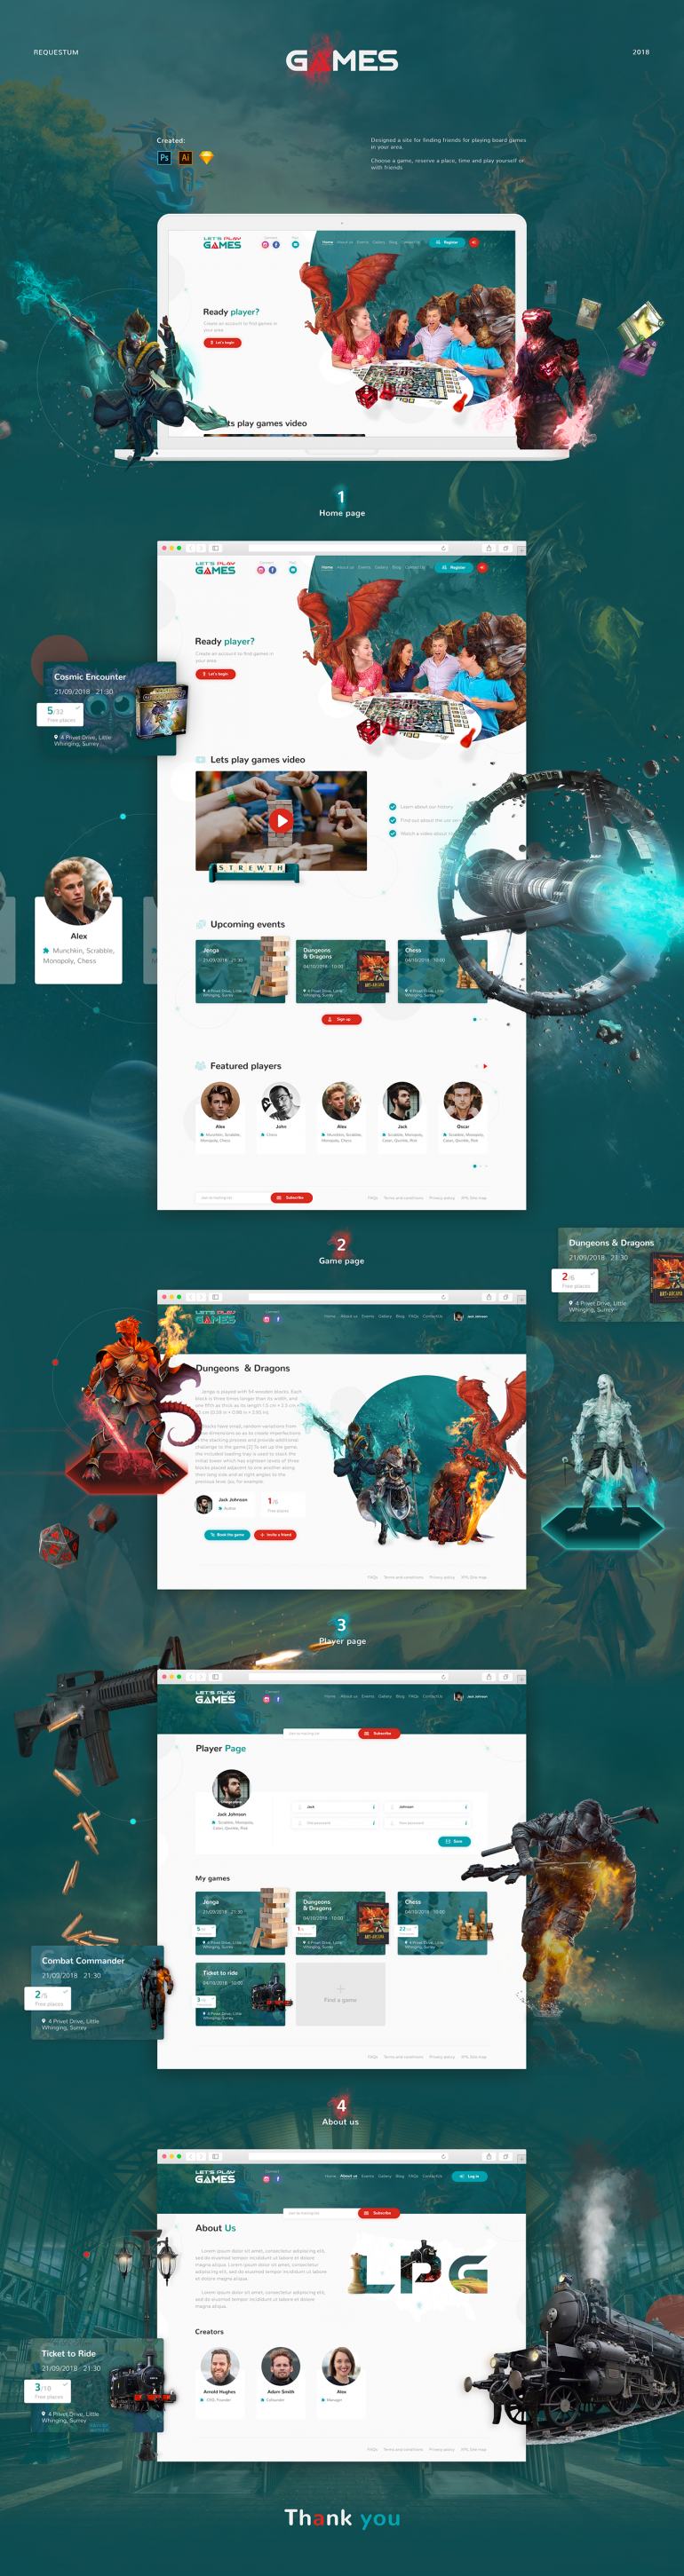 """Lets play games"" website design"